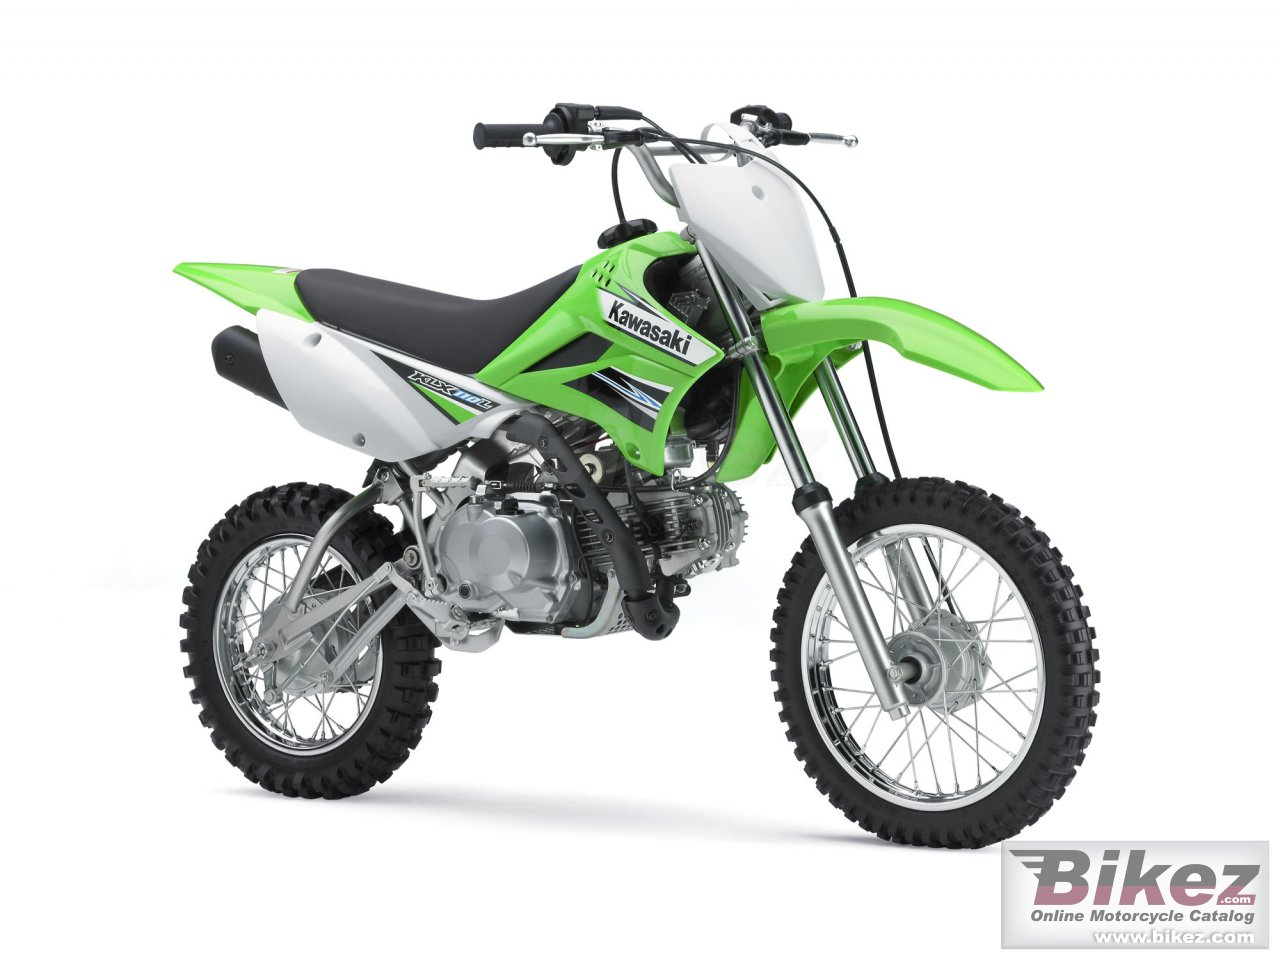 Big Kawasaki klx 110l picture and wallpaper from Bikez.com